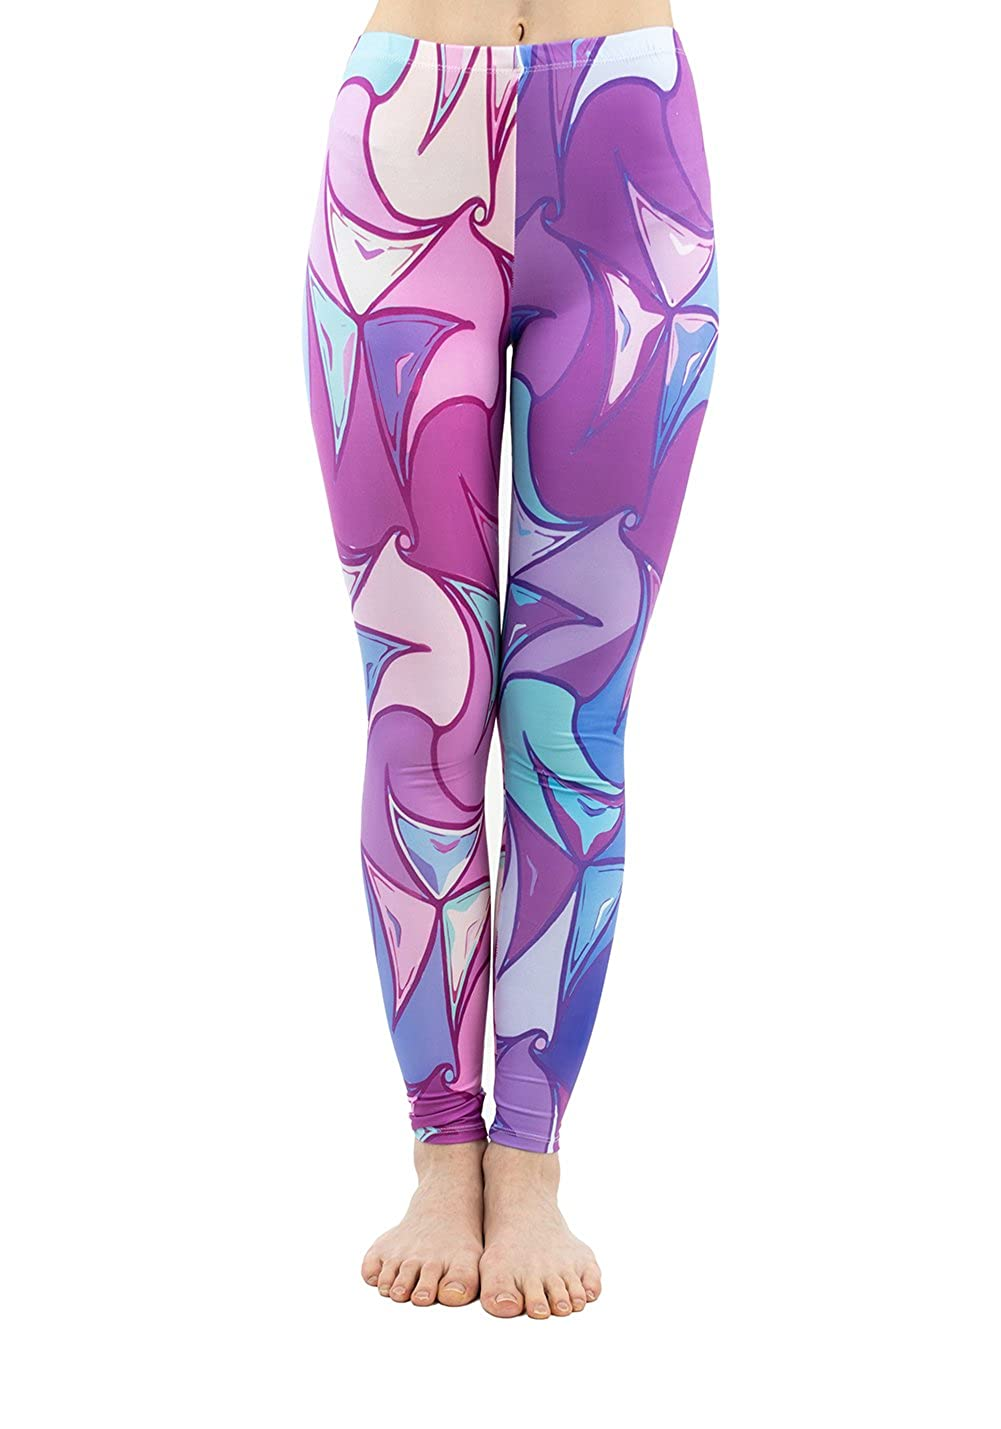 117042e8a6 FULL LENGTH LEGGINGS FOR EVERY HEIGHT - No matter how short or tall you  are, PINK PLOT Yoga Pants go from XS to L (Size 0-12))with its super  stretchy fabric ...